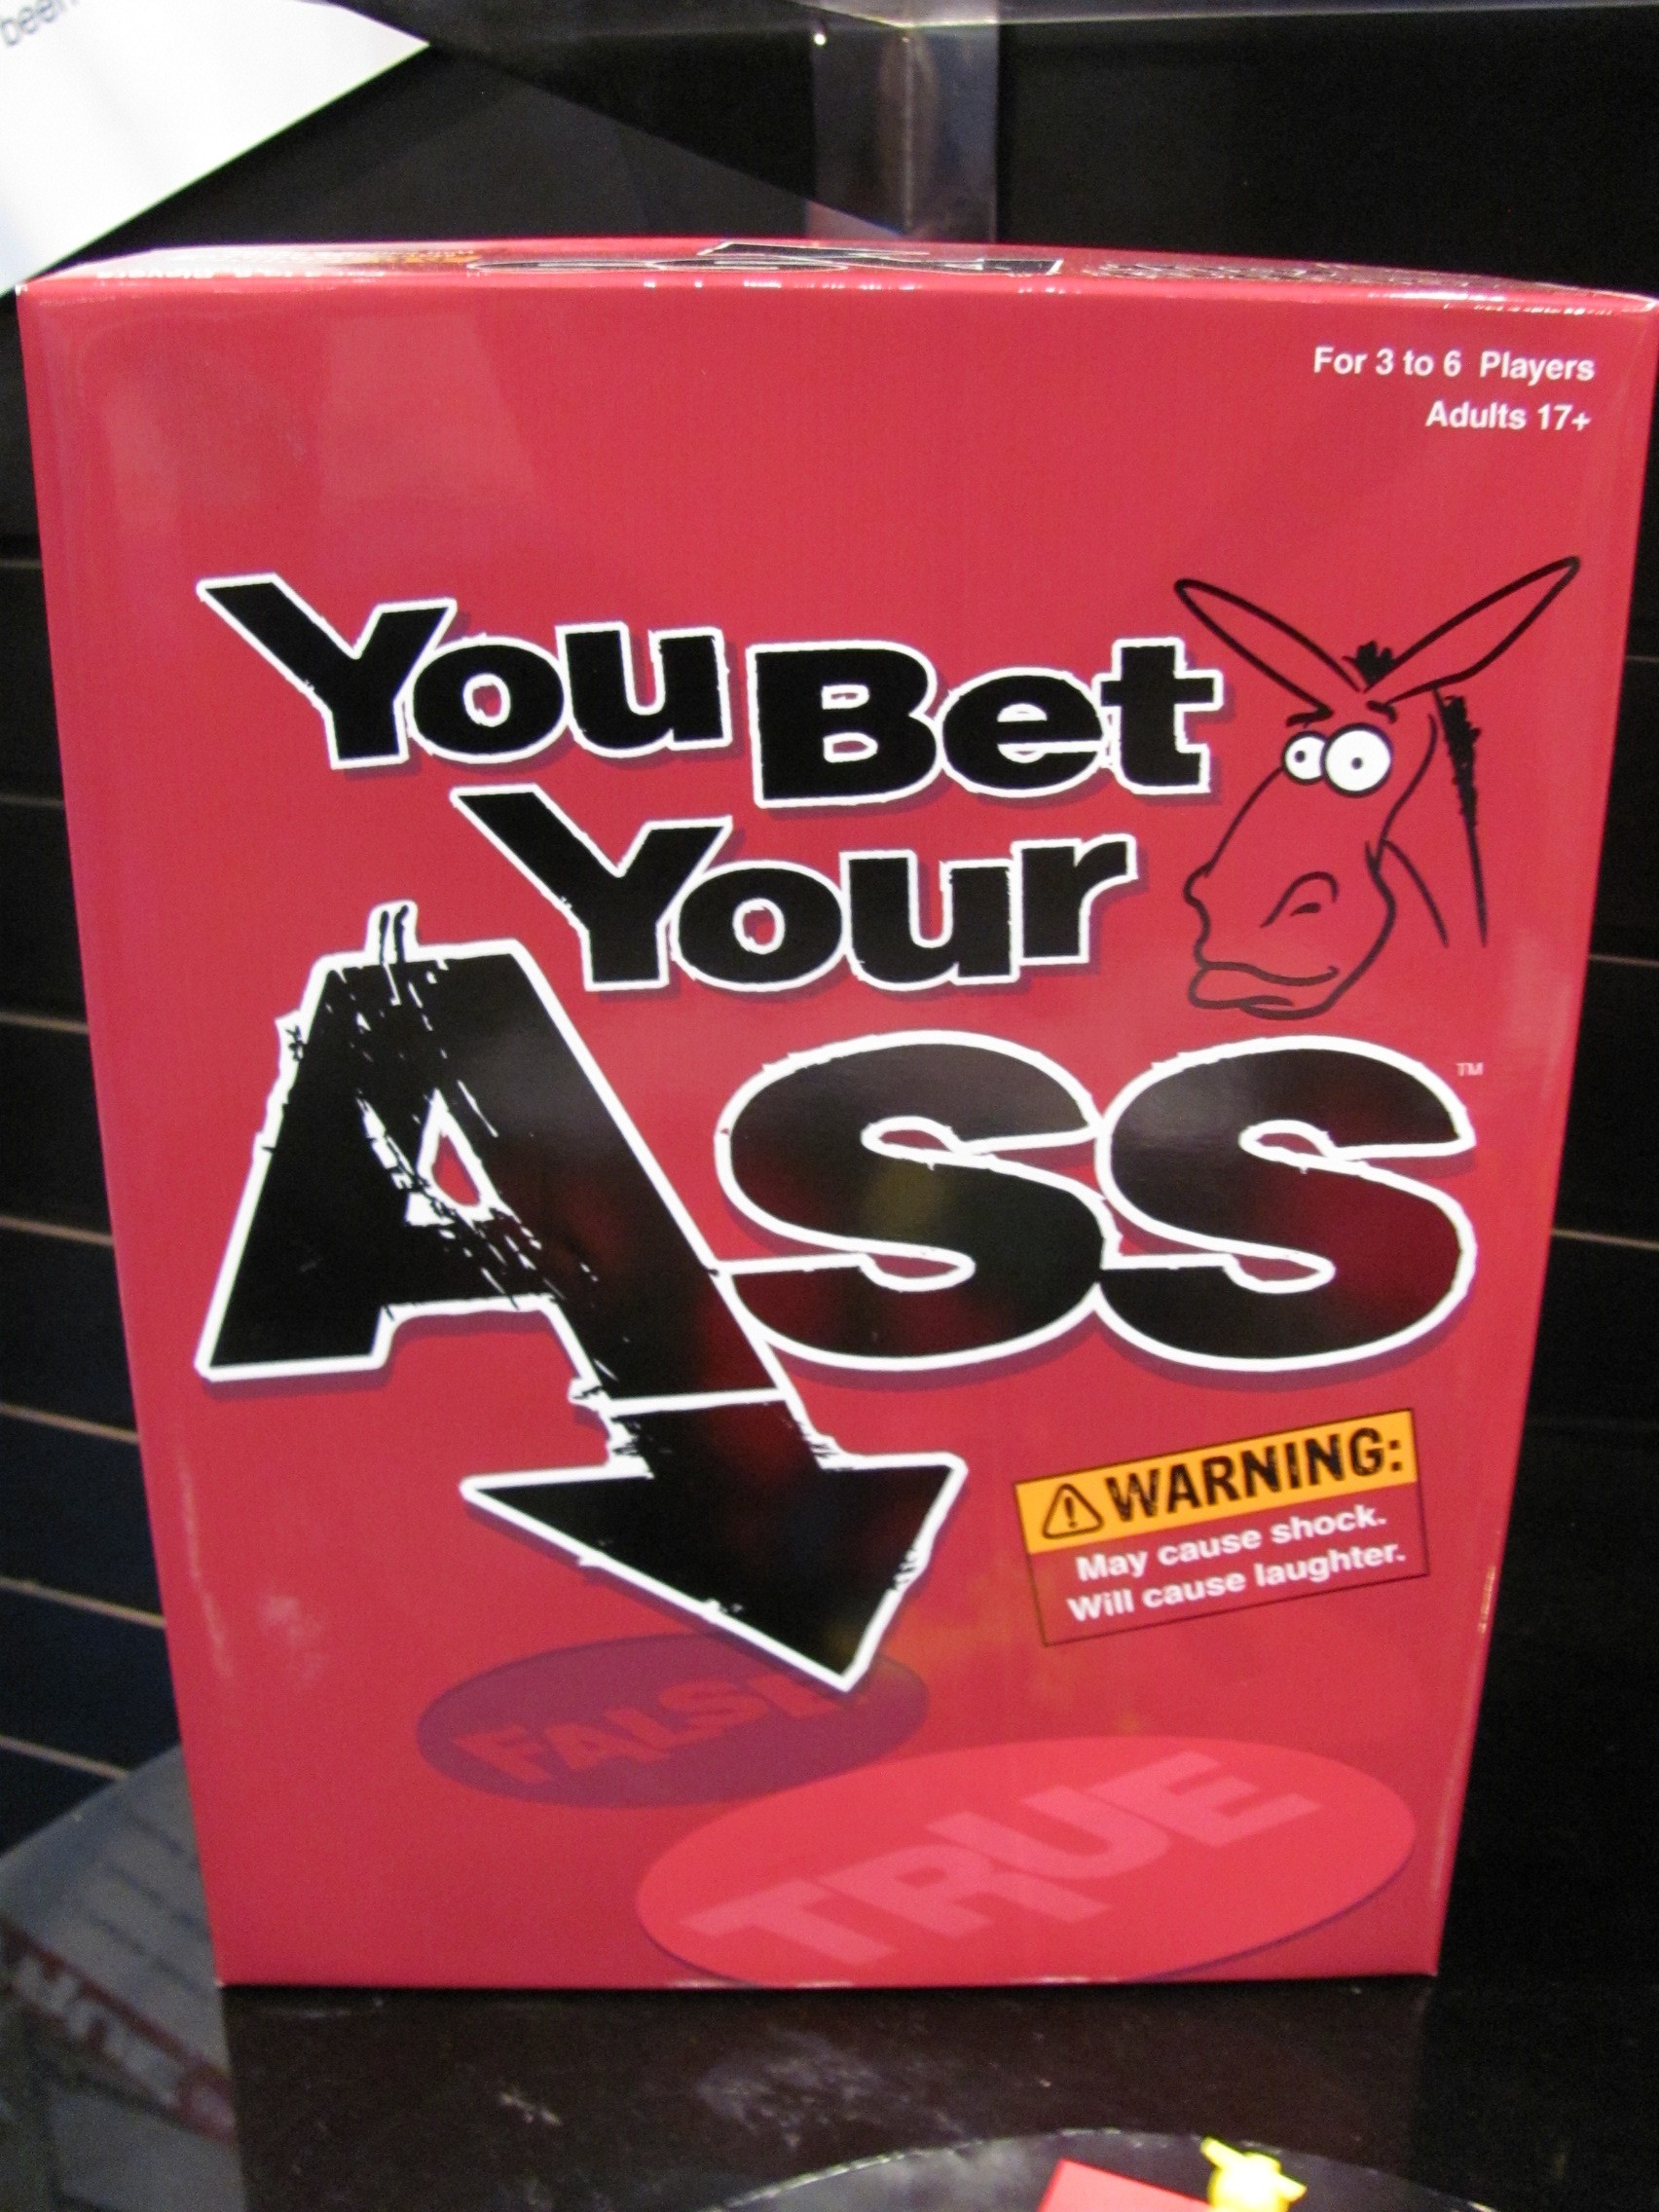 You bet your ass